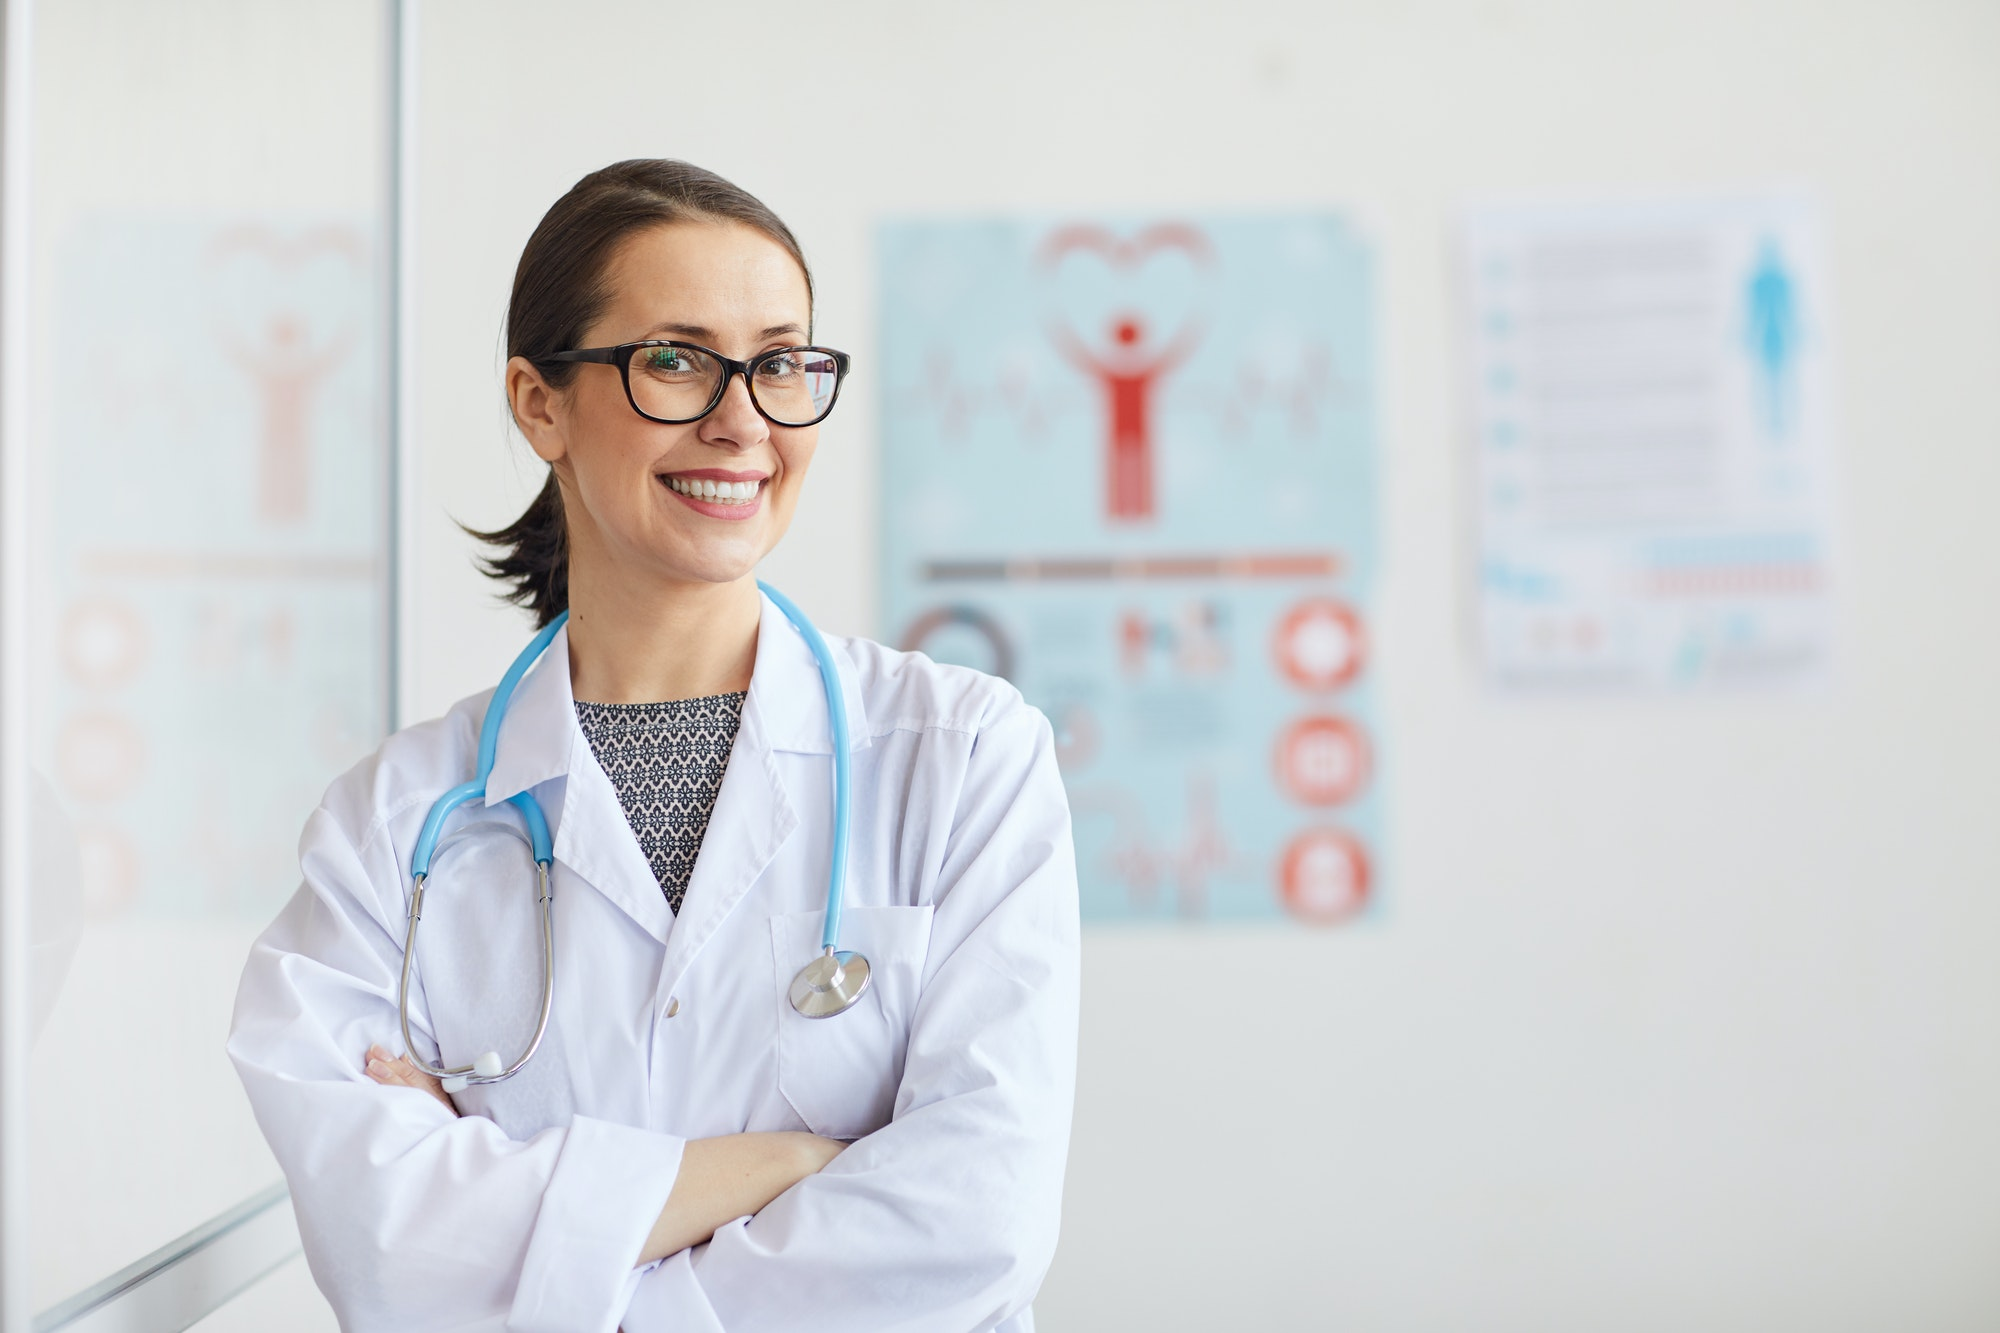 Doctor working at hospital